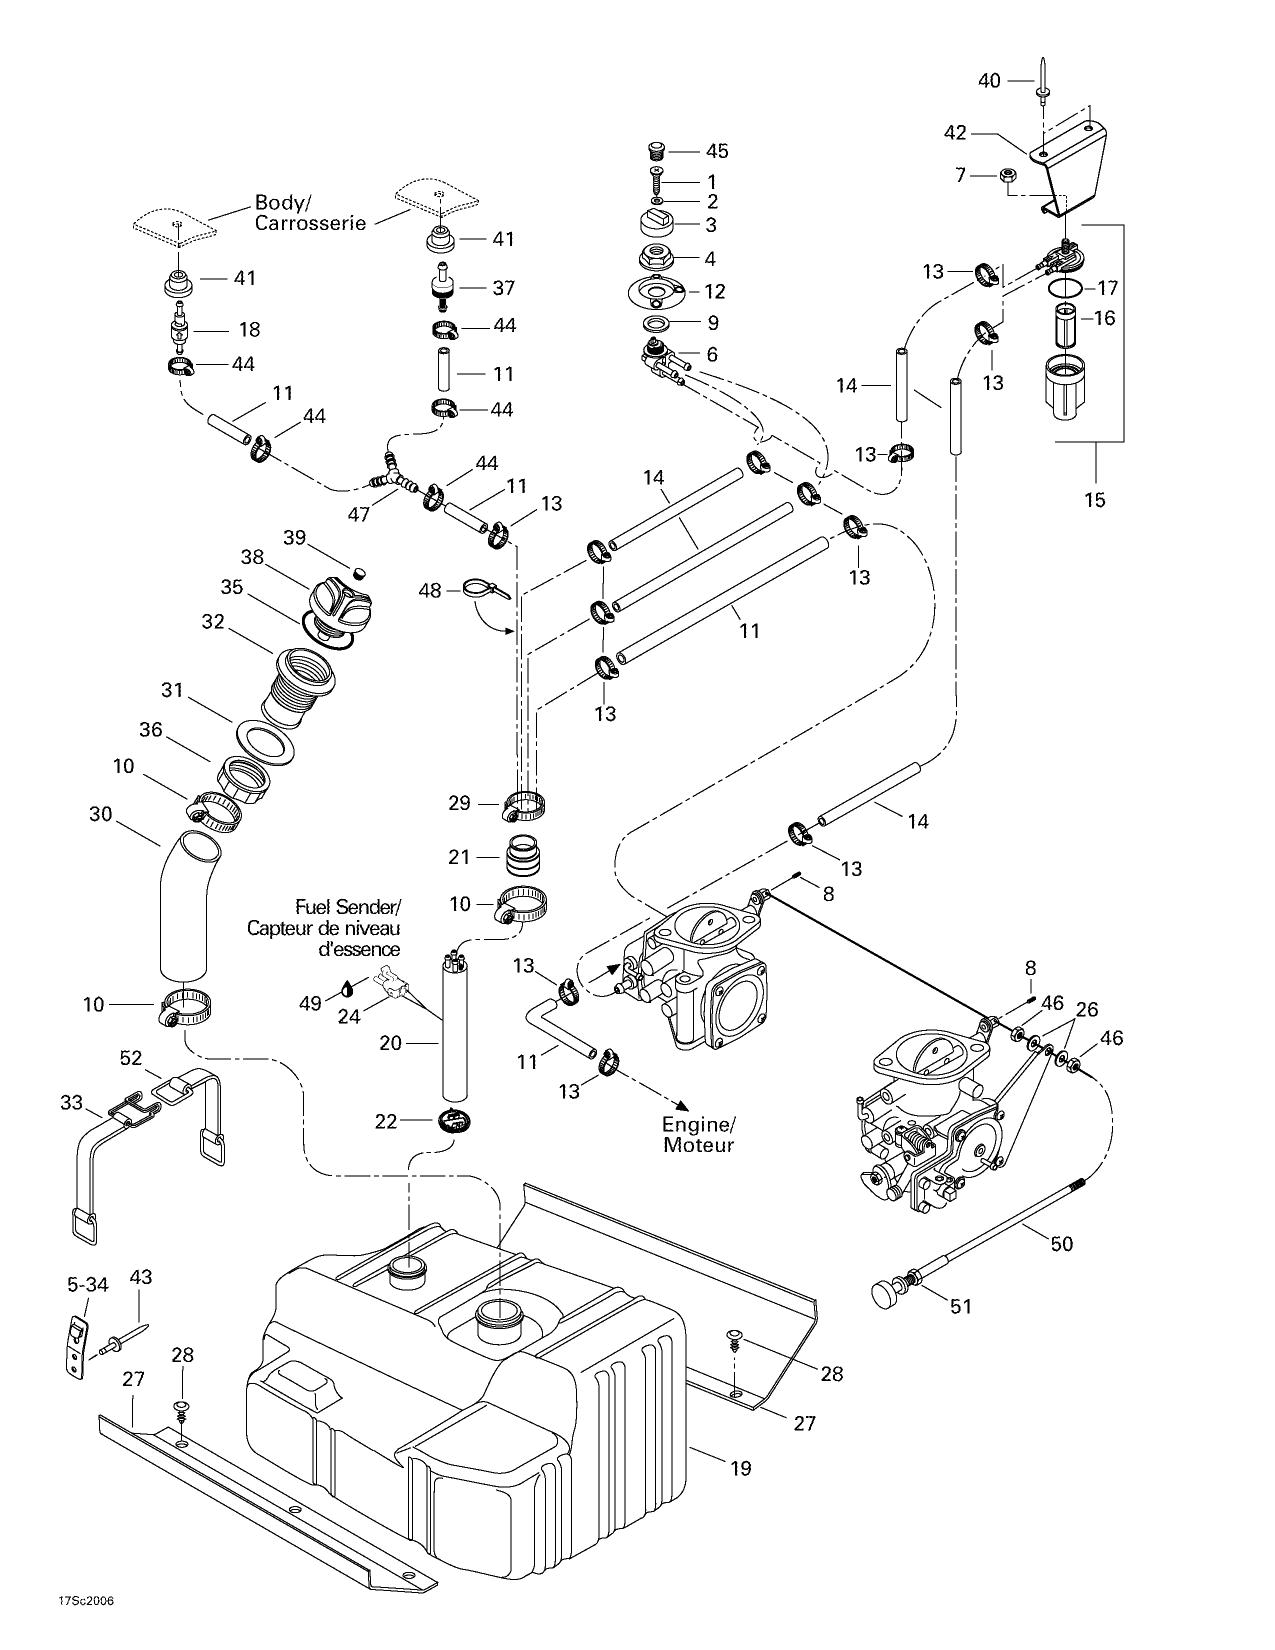 Sea Doo Gts Wiring - Wiring Diagram Database  Sea Doo Gtx Wiring Diagram on